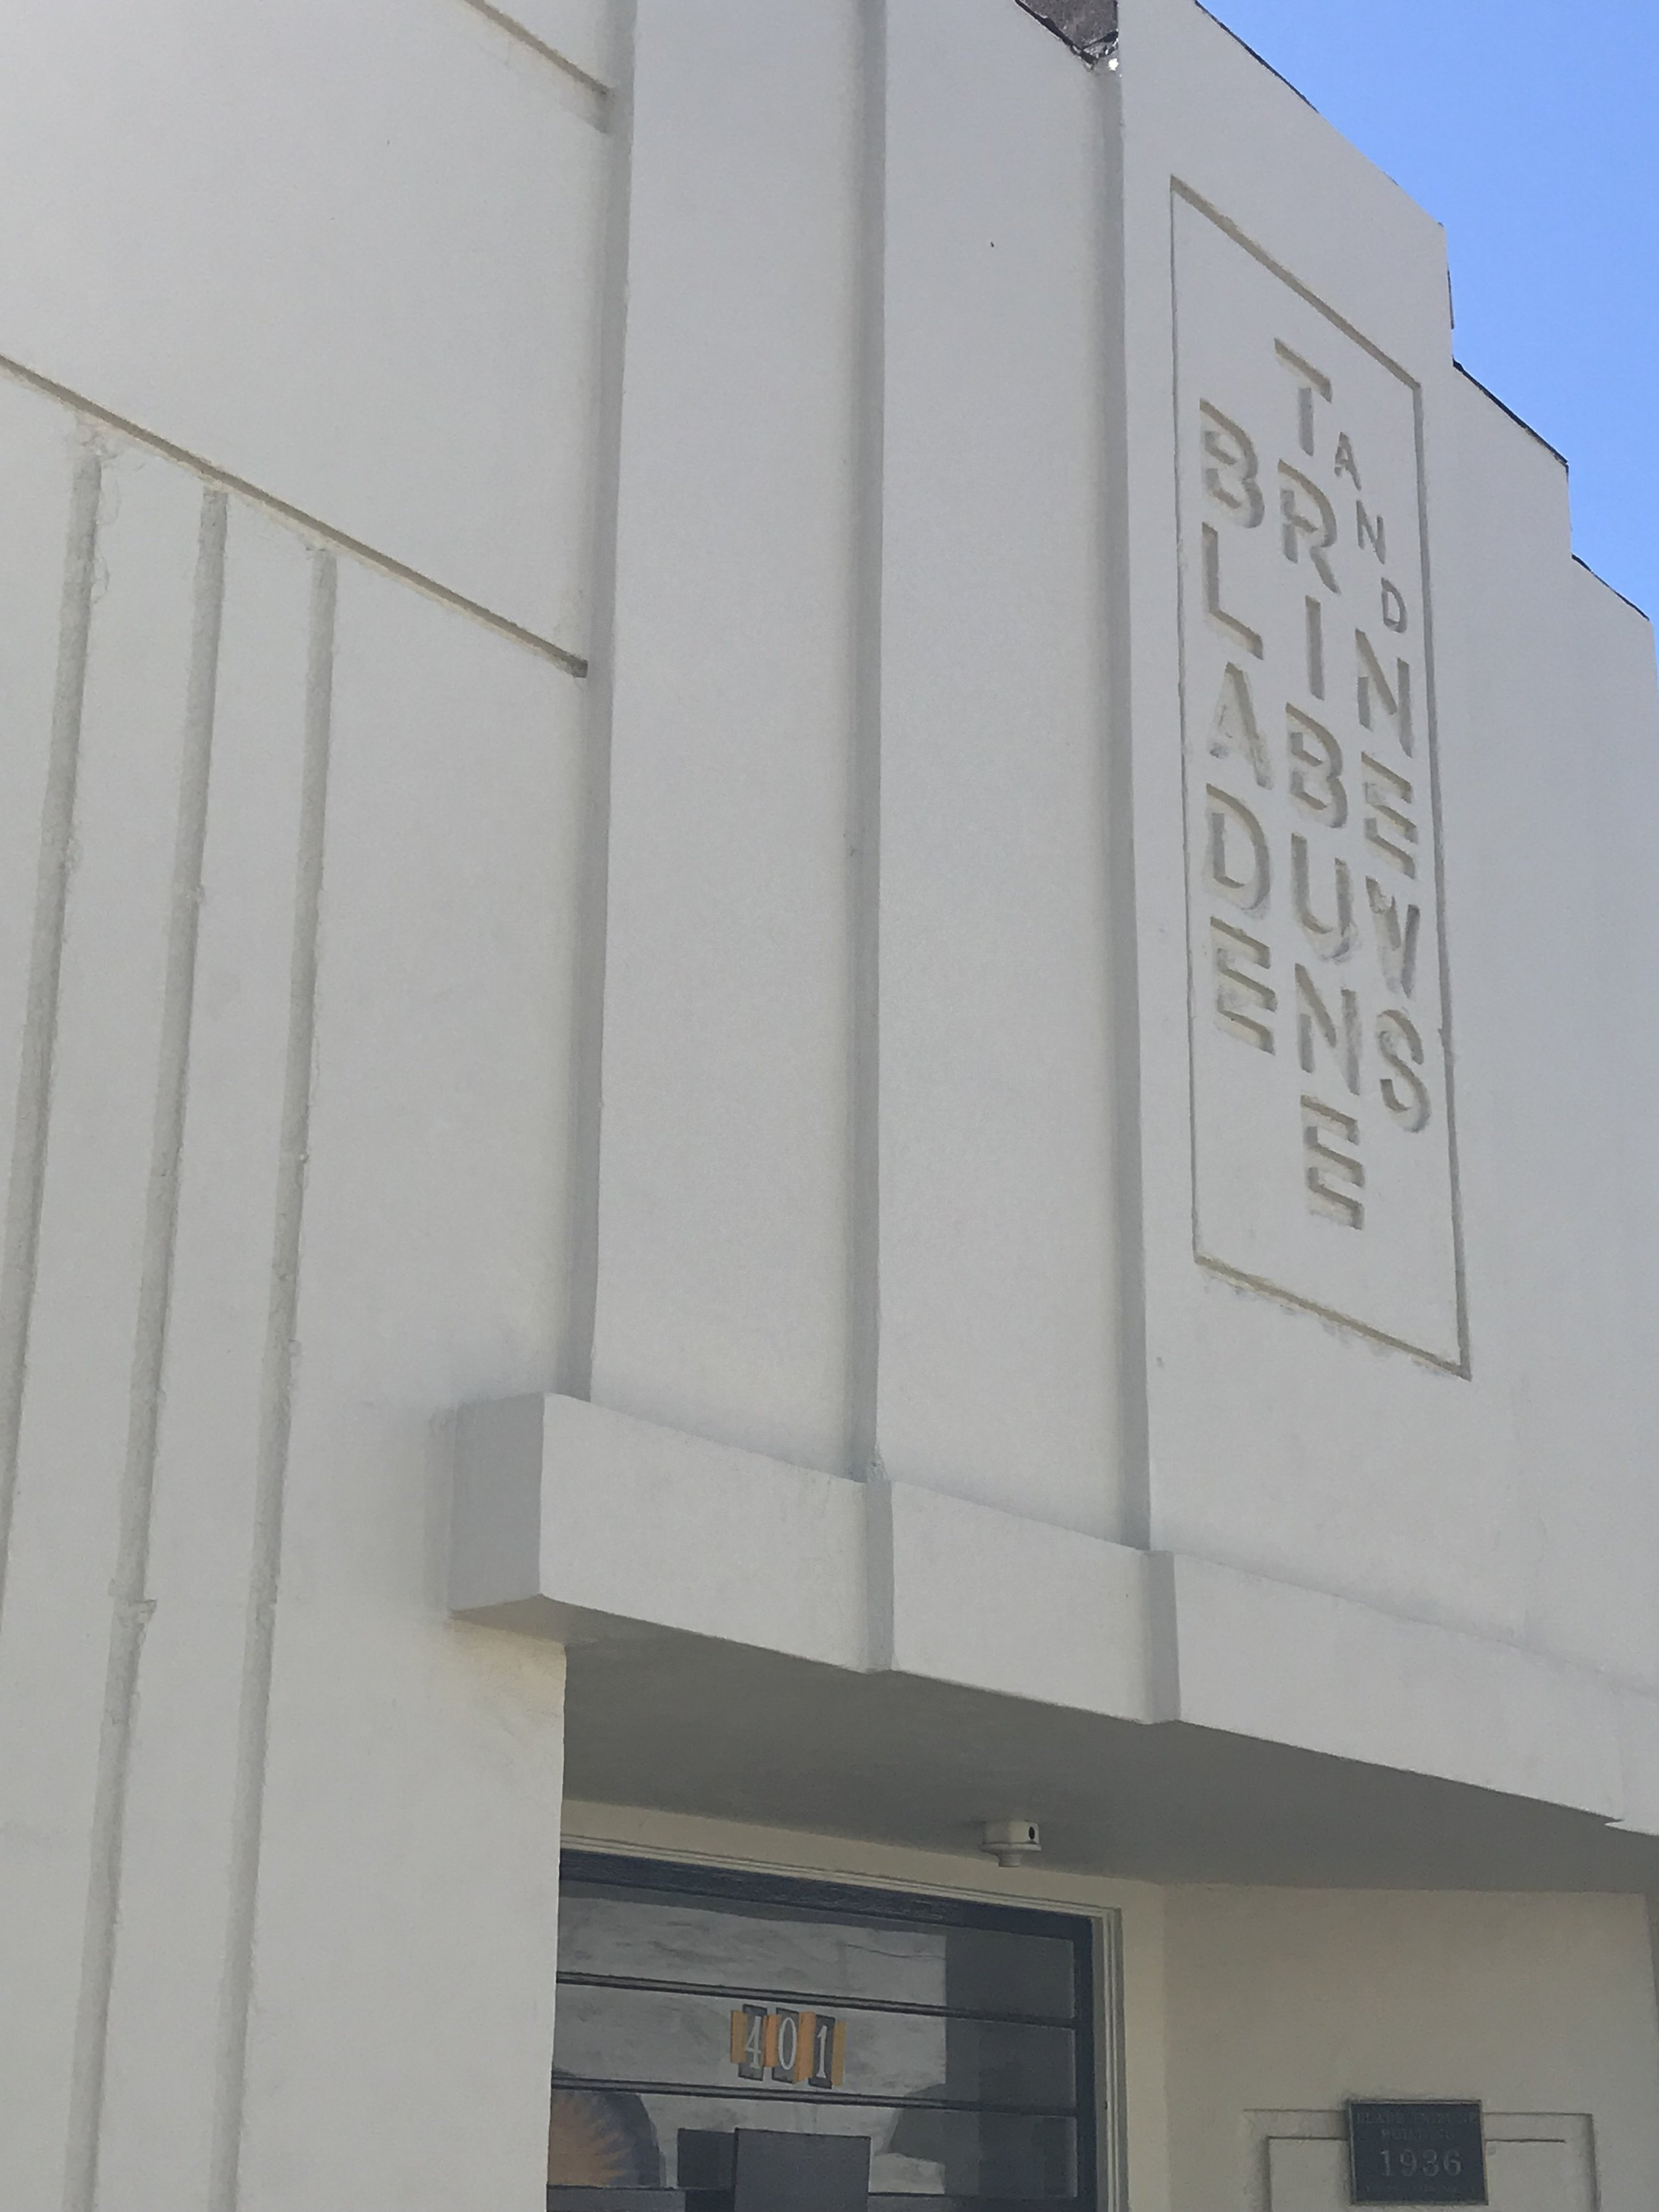 Why Blade 1936? - The name Blade 1936 is a nod to Oceanside's old newspaper, The Blade-Tribune, which occupied the space from 1936 until the 1960s.The historic building which is included in the City of Oceanside's Historical Resources Inventory, was designed by famed San Diego architect Irving Gill in 1936 and is notably his last work before his death. The building is a mix of modern and Art Deco and local architect Kennith Chriss will elevate the space adding rustic, wood and steel elements, while keeping the historic beauty.